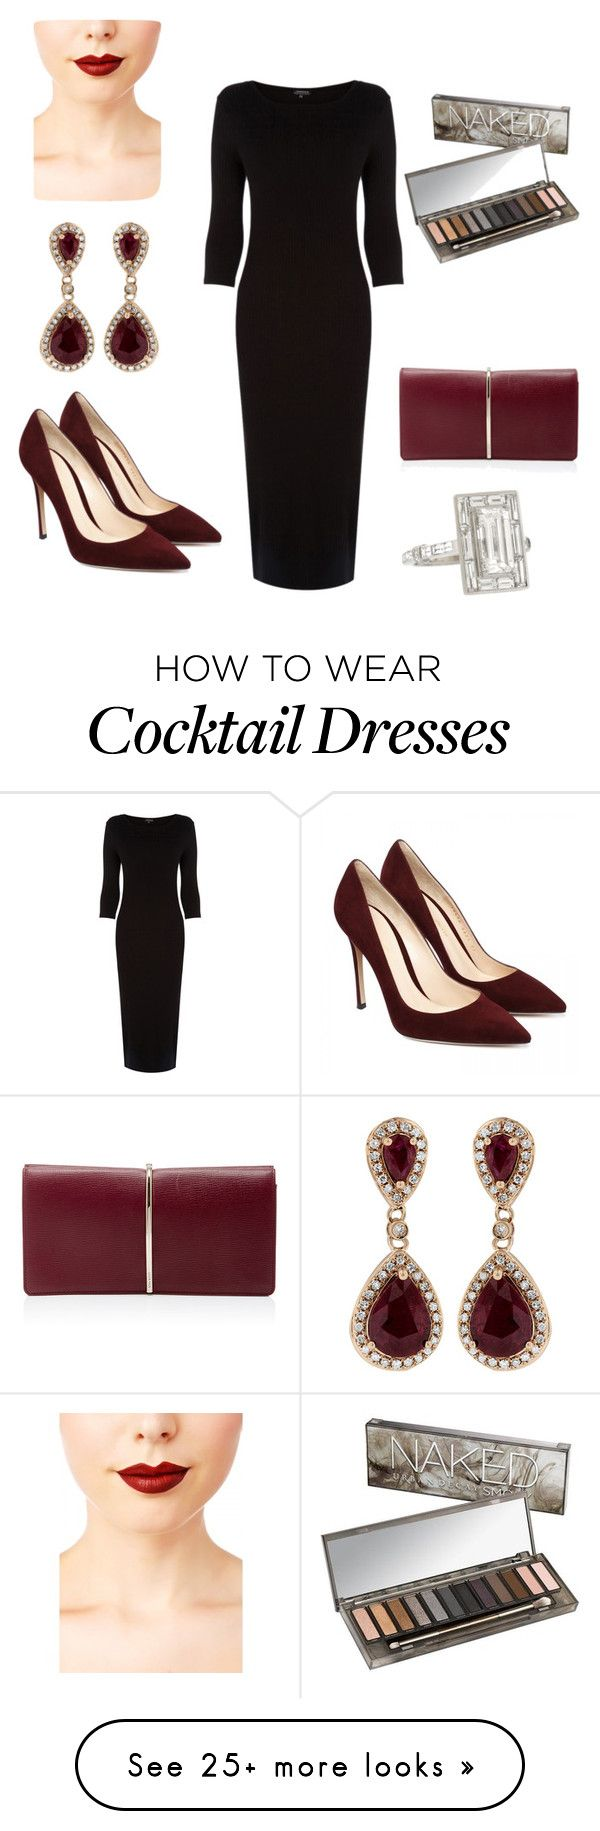 Cocktail dress accessories quotations